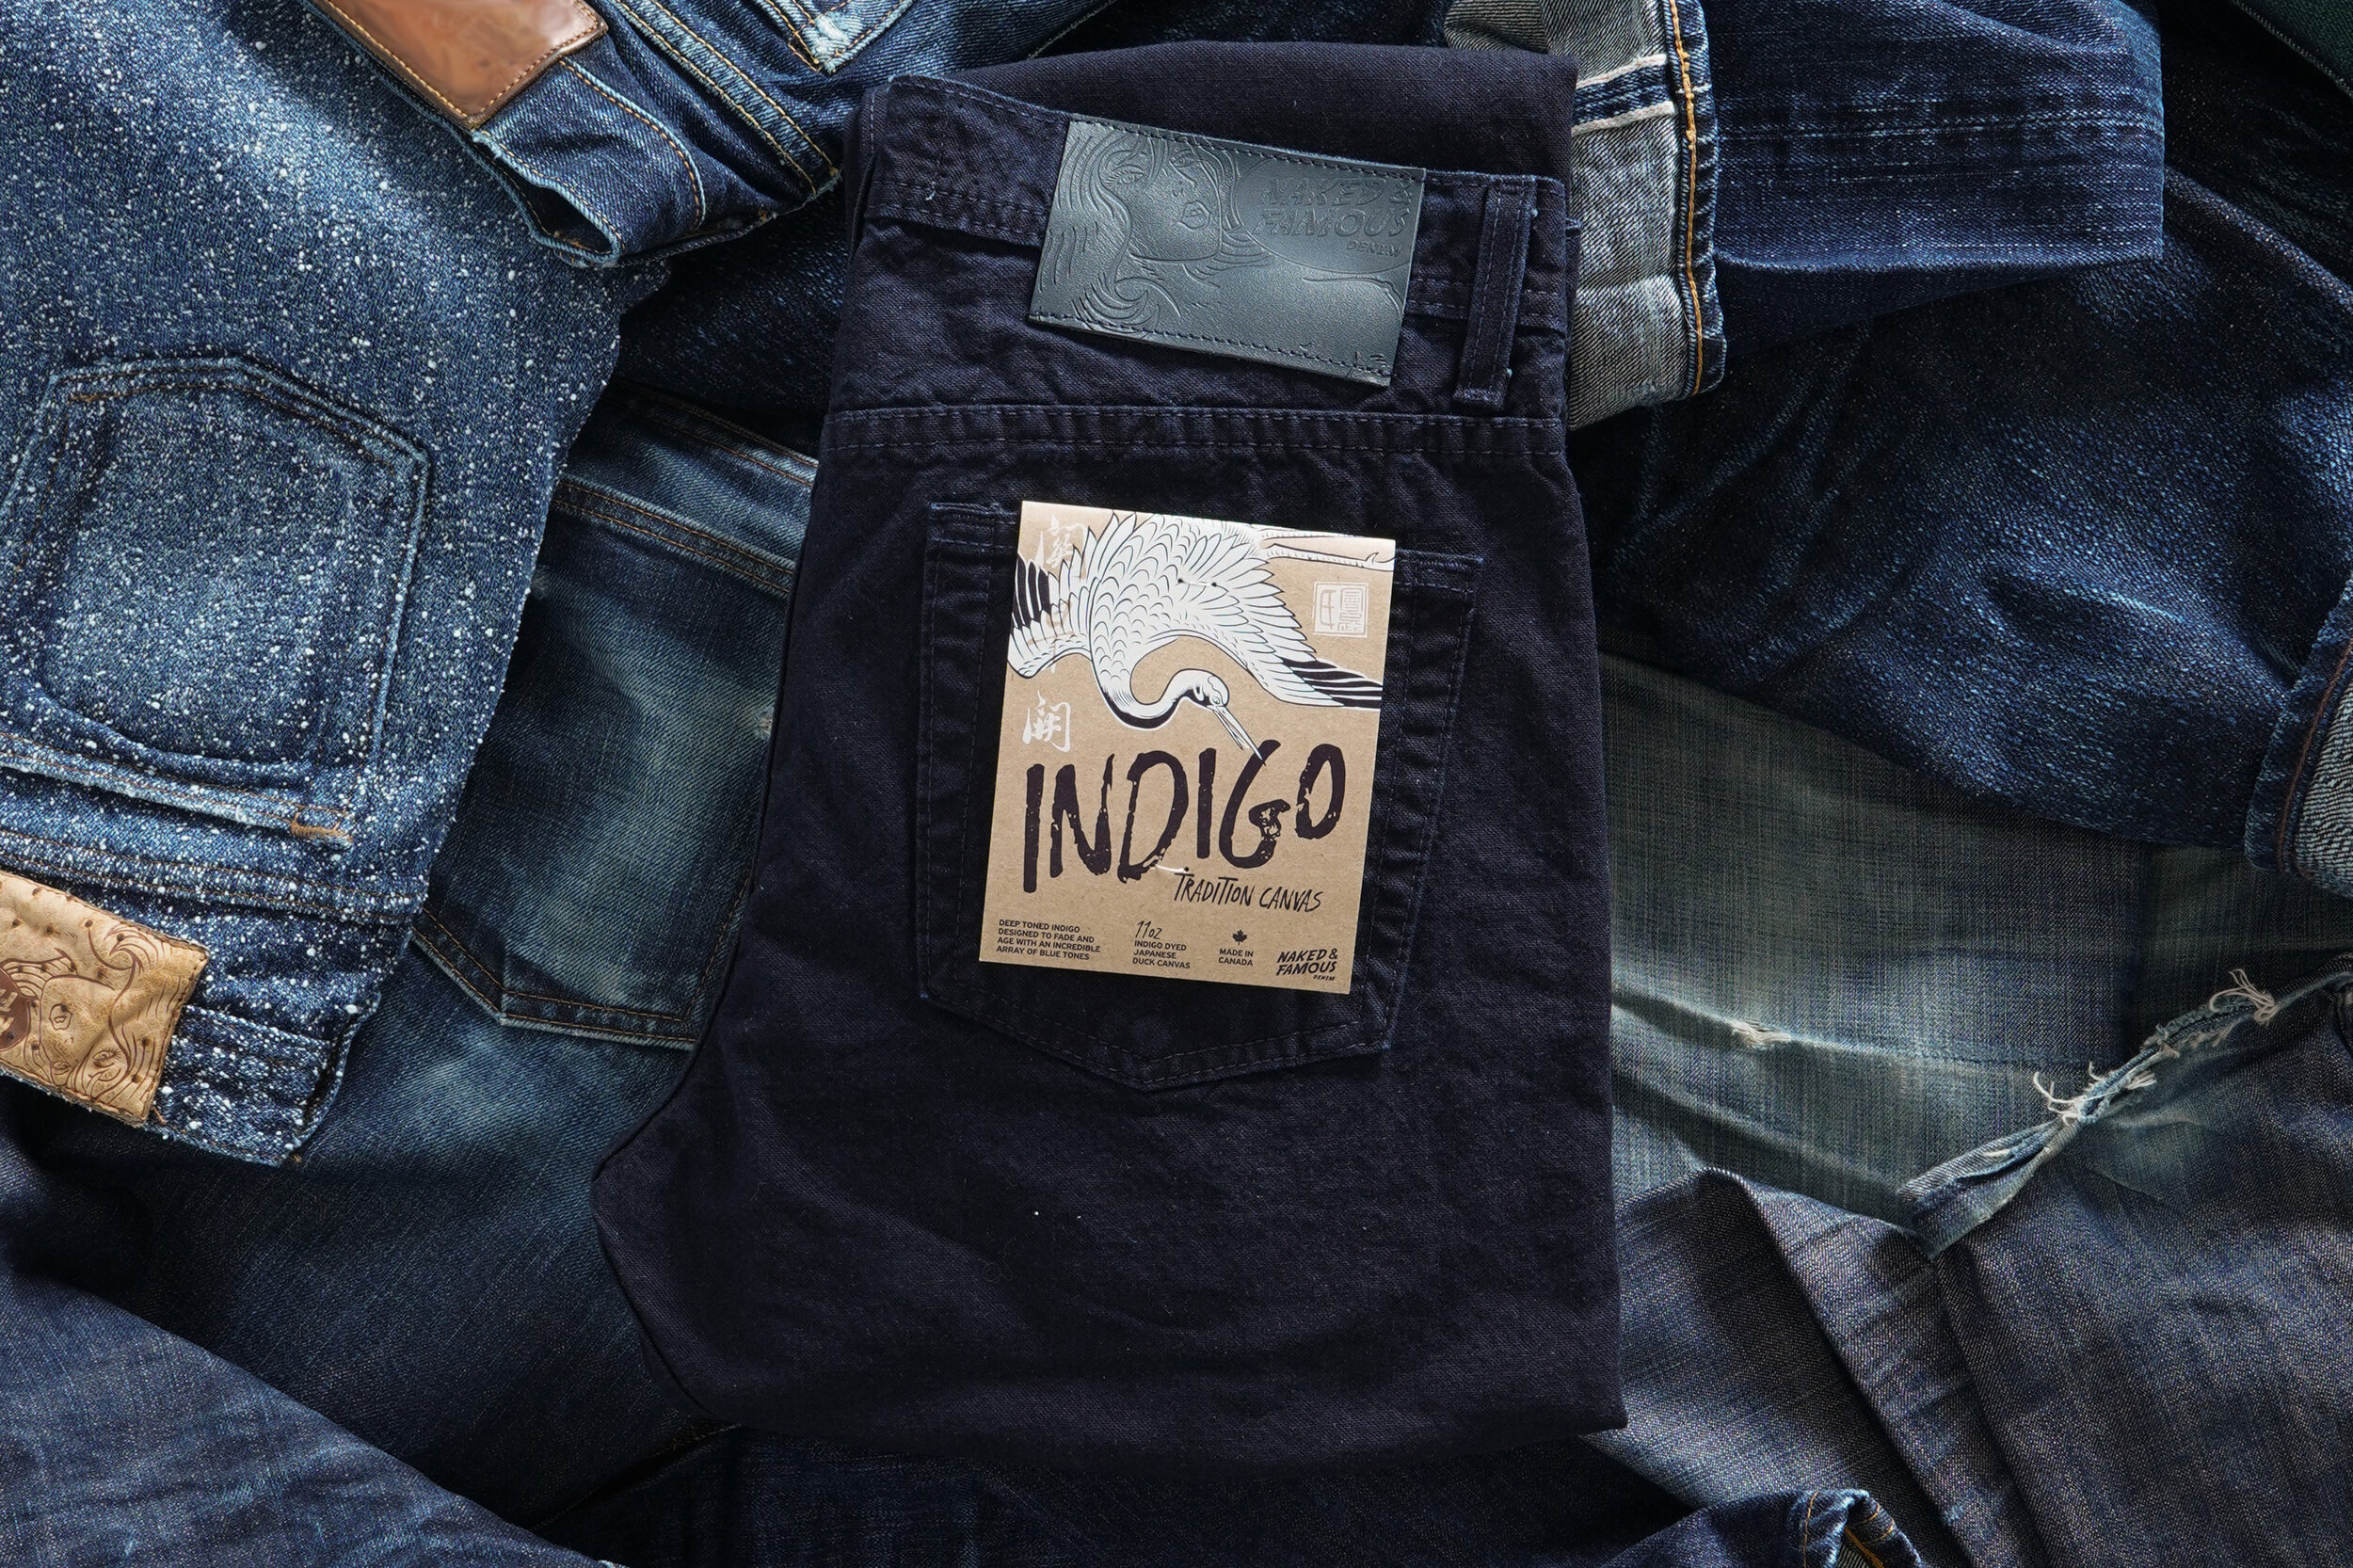 Indigo Tradition Canvas - Folded Flat